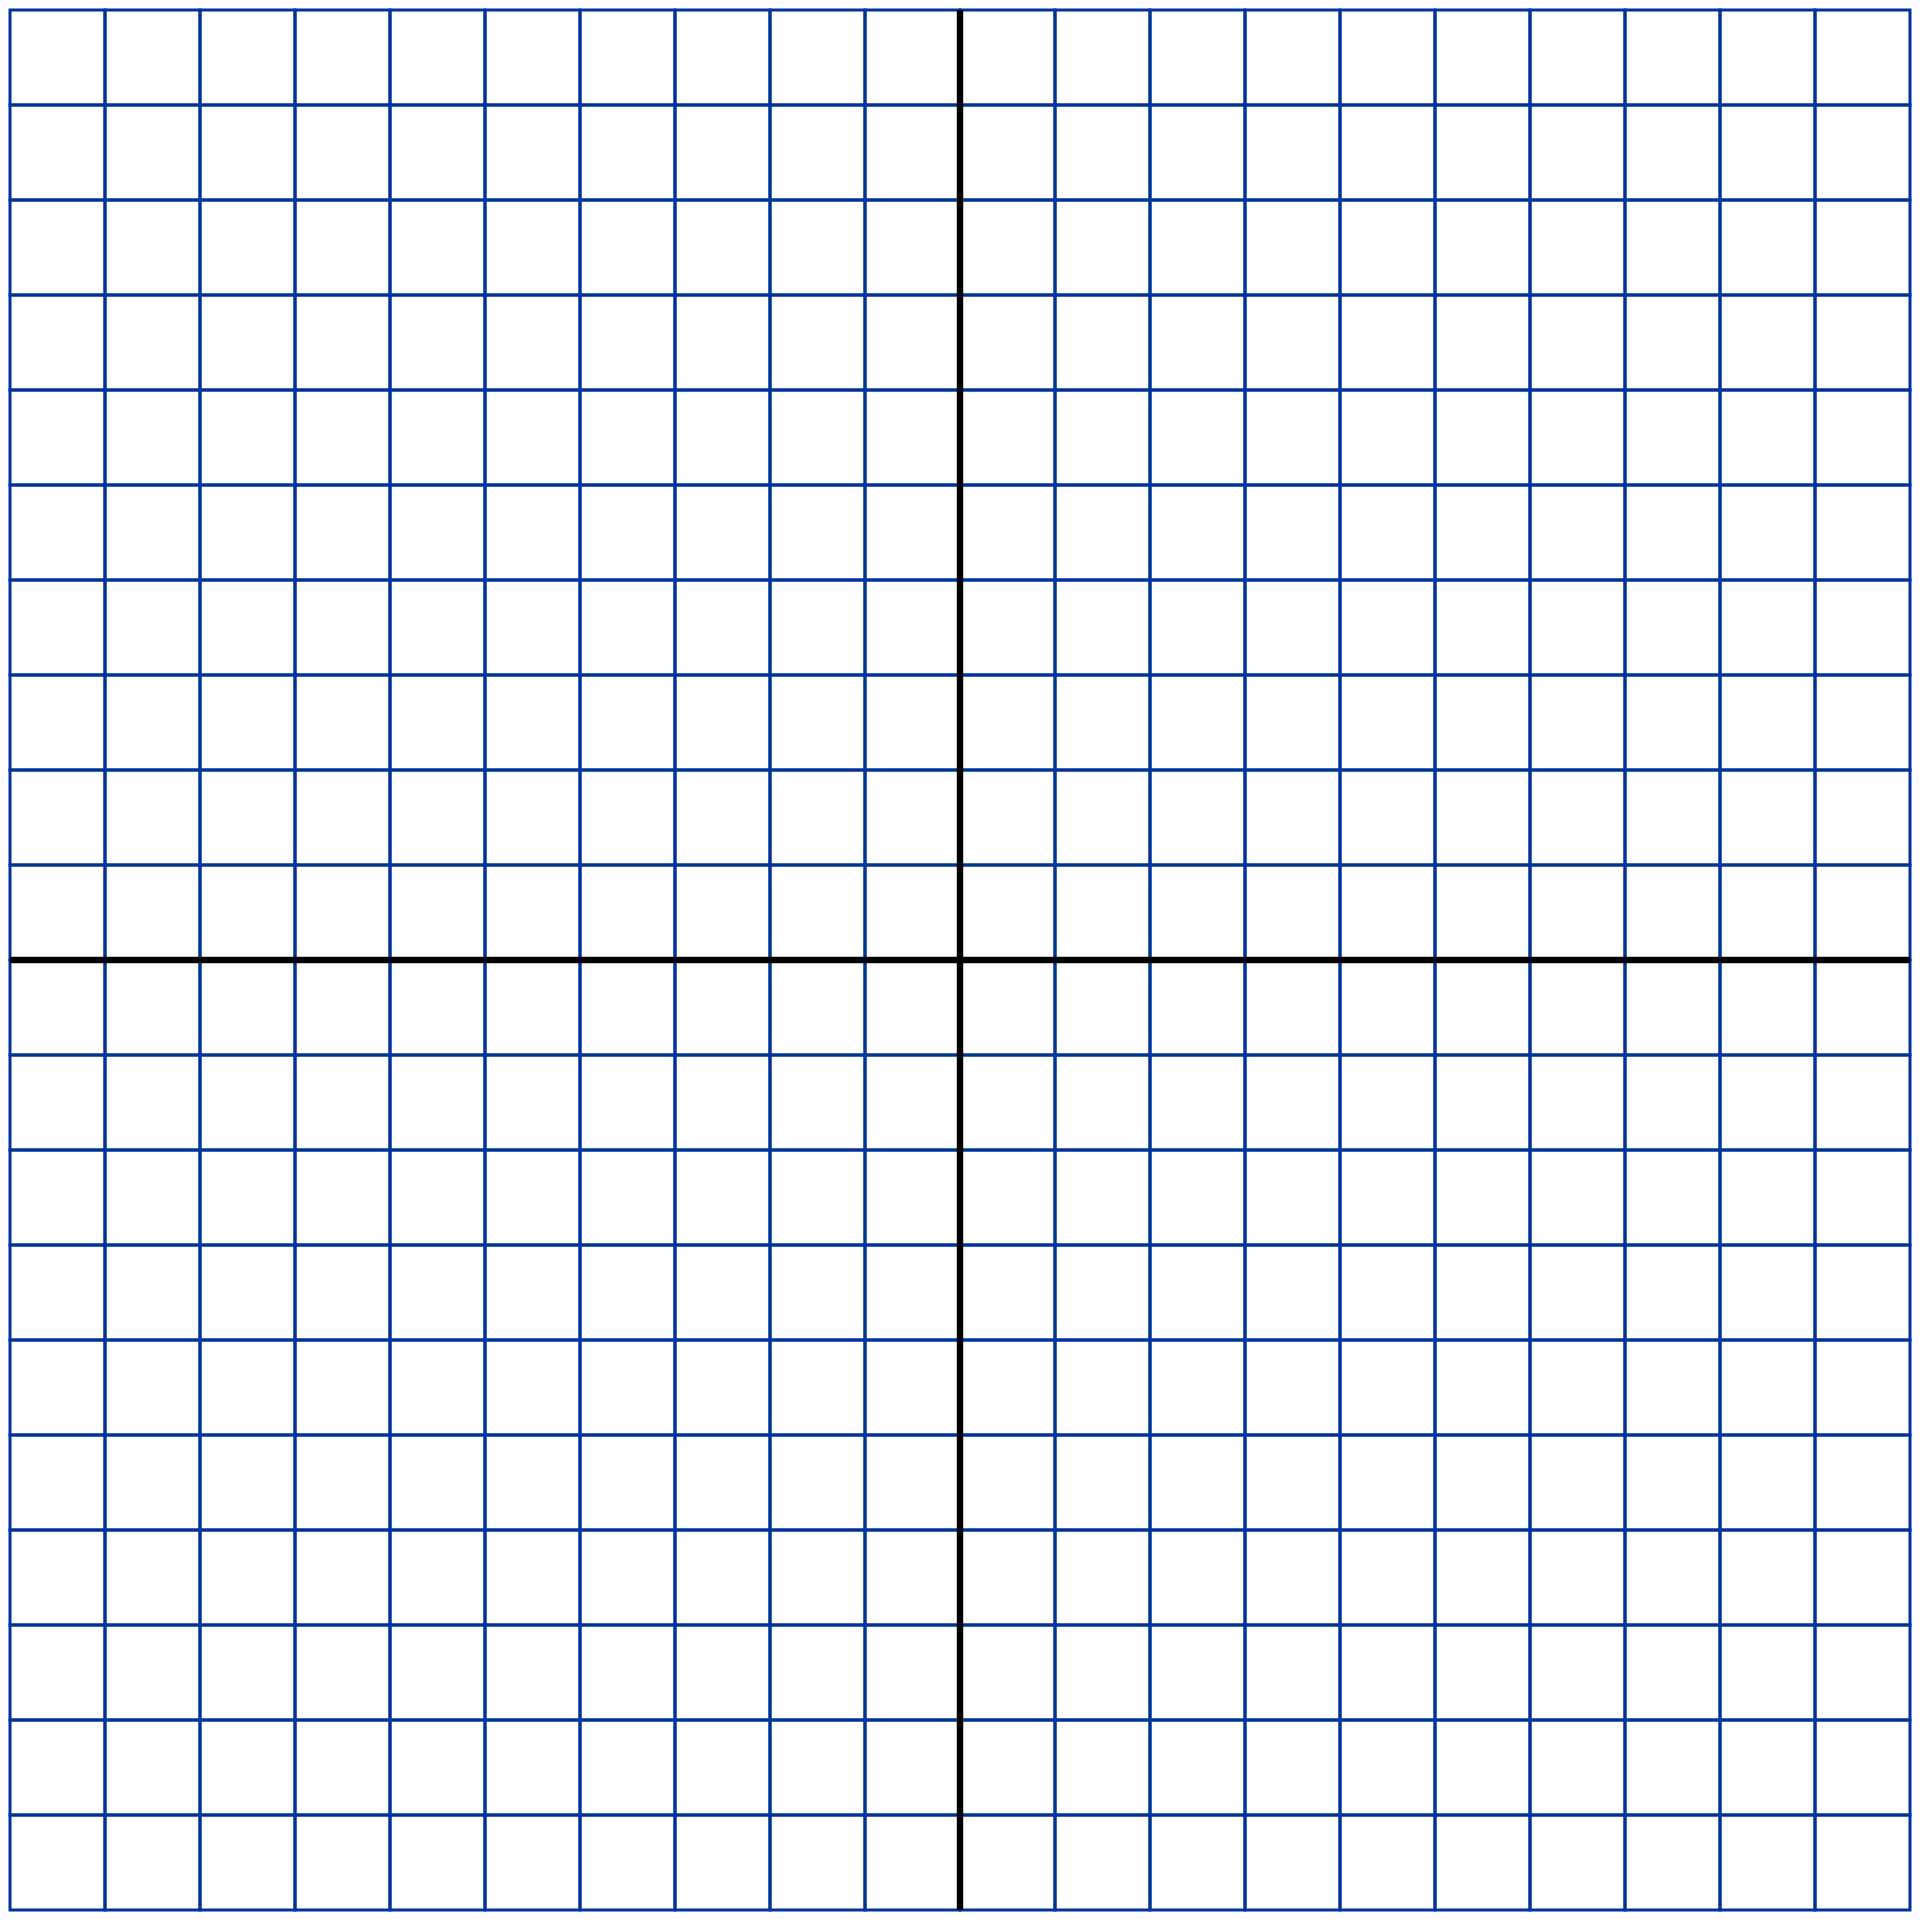 6 Images of 20 X 20 Grid Printable